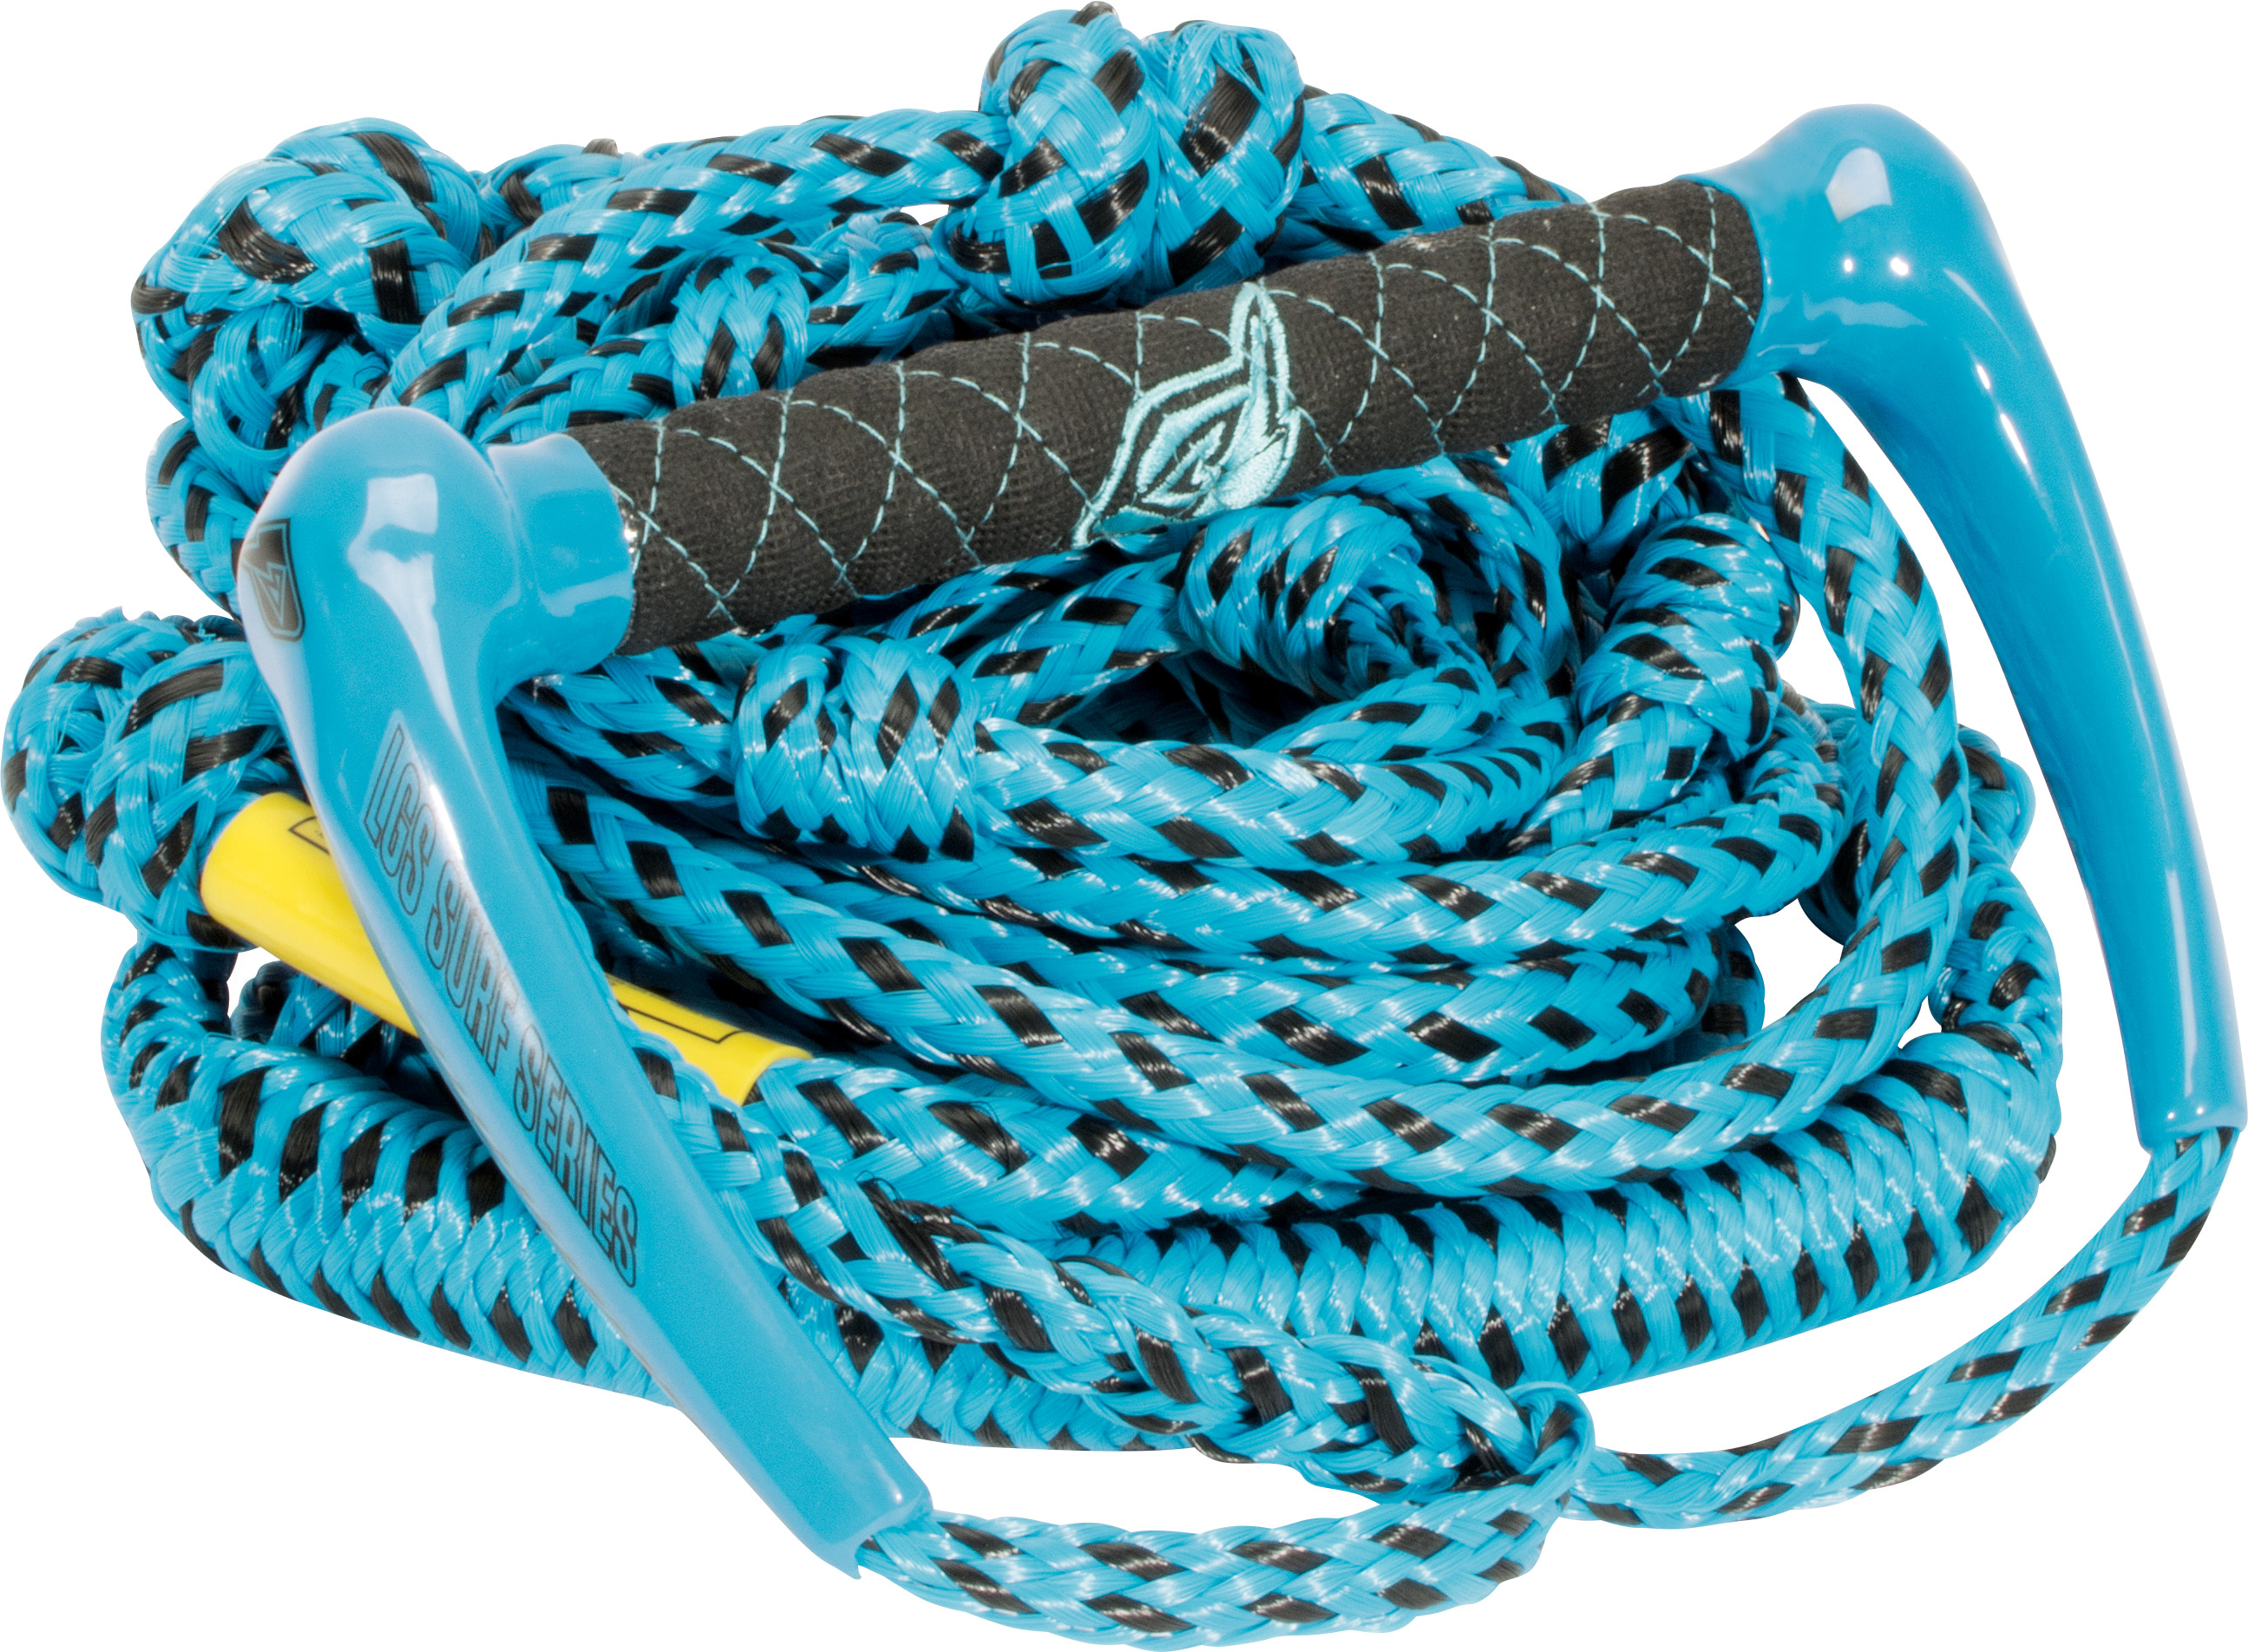 25' LGS BUNGEE SURF ROPE W/HANDLE PACKAGE  - BLUE PRO LINE 2018